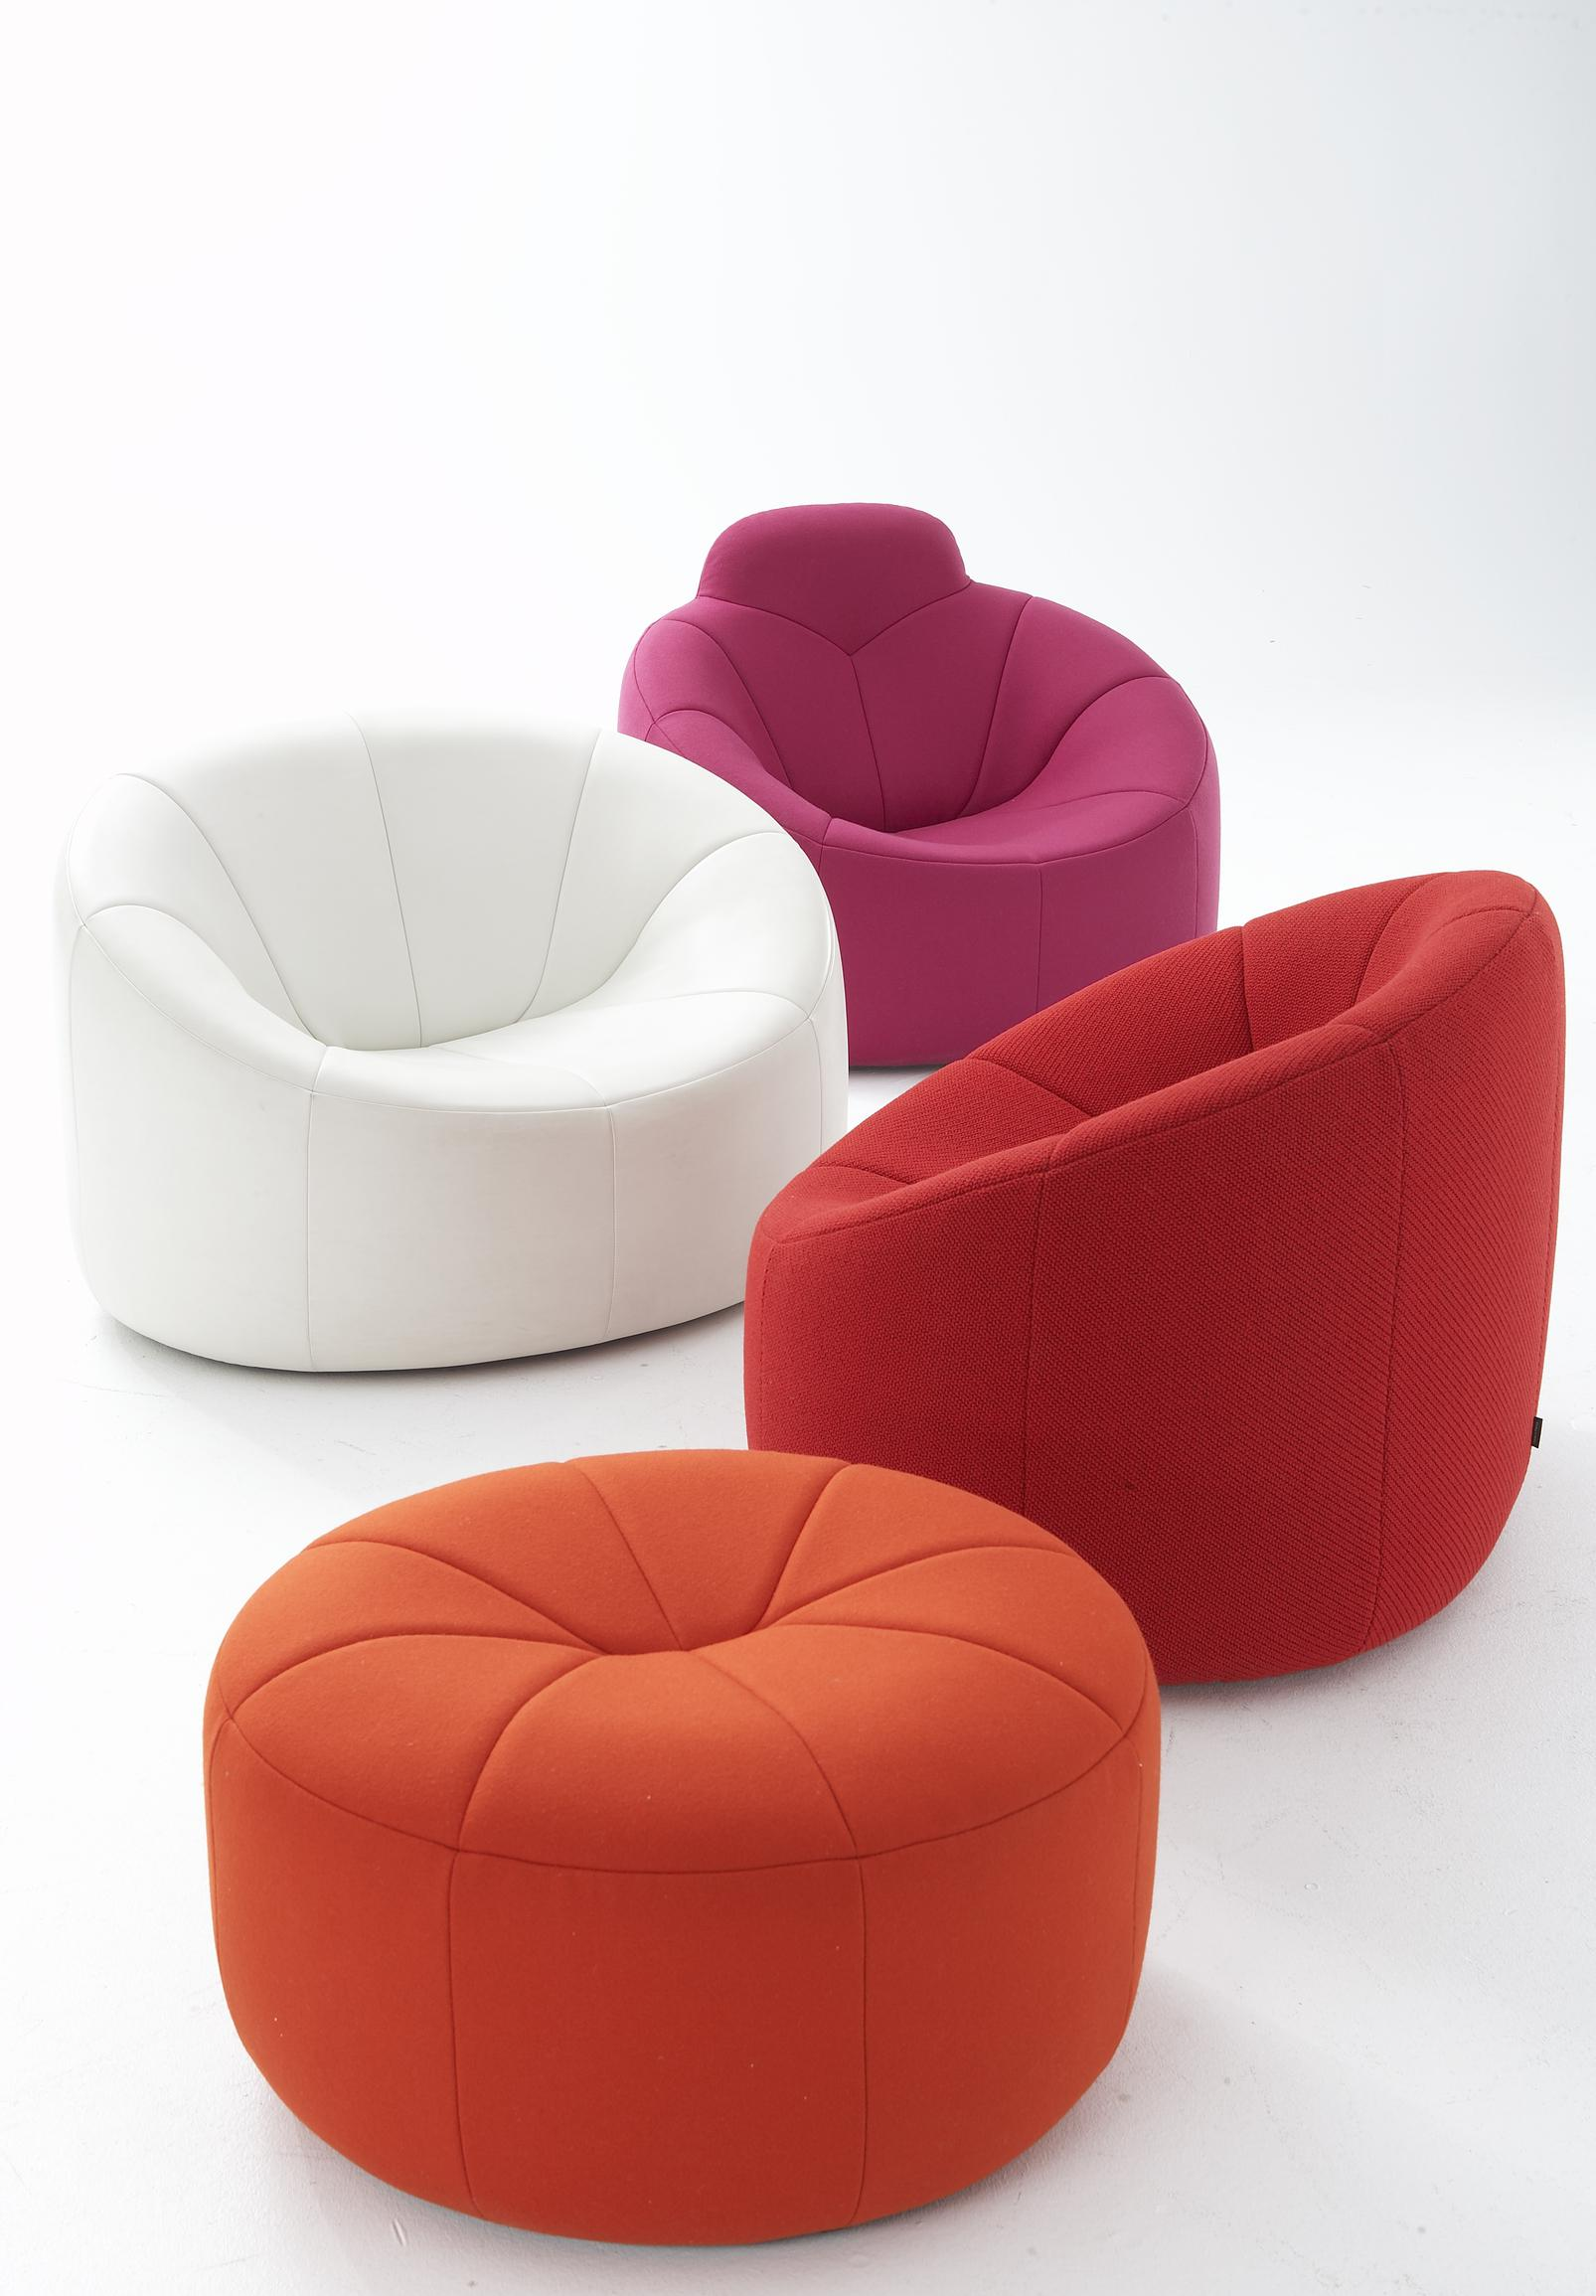 pumpkin armchairs from designer pierre paulin ligne roset official site. Black Bedroom Furniture Sets. Home Design Ideas